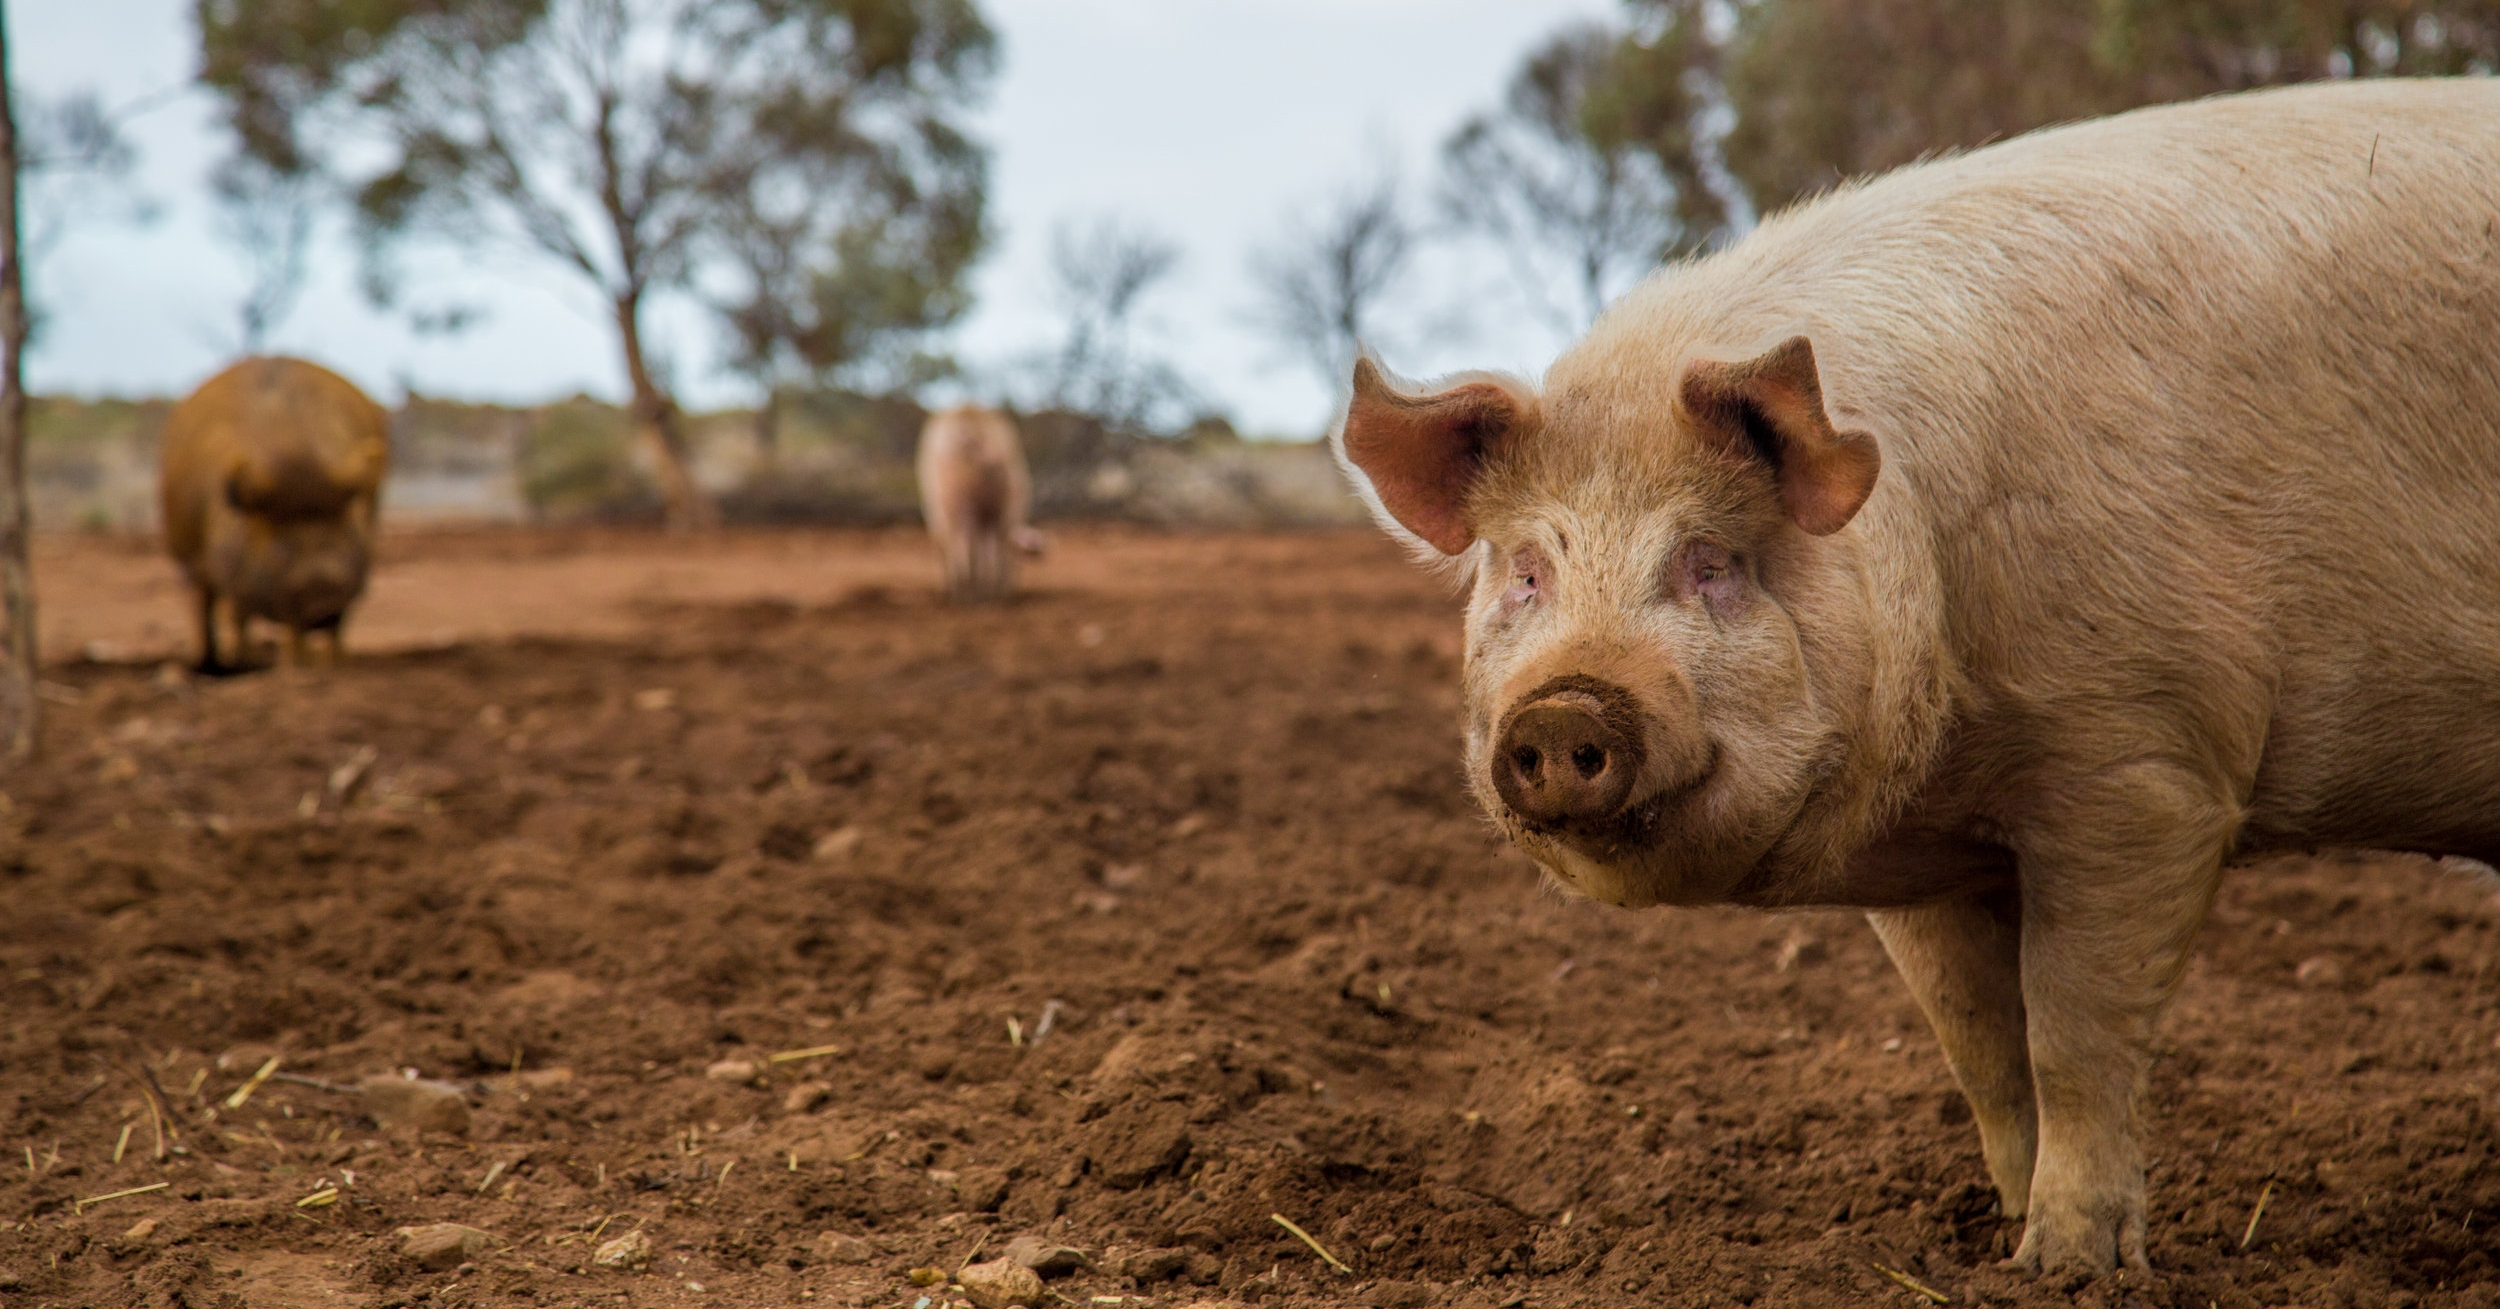 Pictured is Mocha, an original Furever Farm resident who has since passed. The pig paddock is named in his honour.